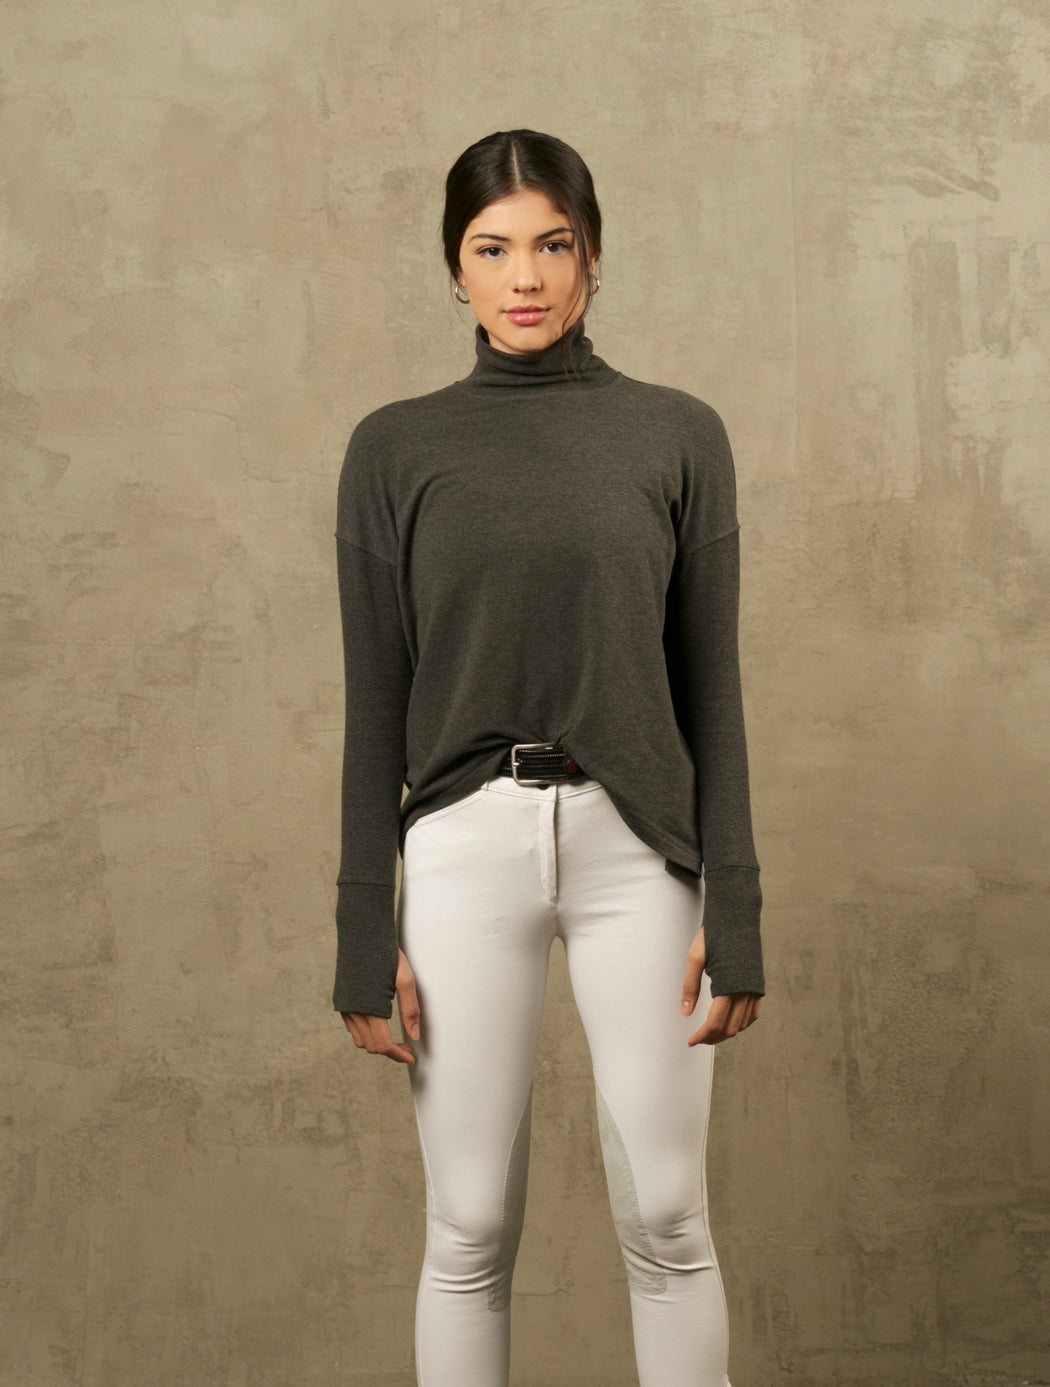 THE CHARCOAL BAMBOO TURTLENECK